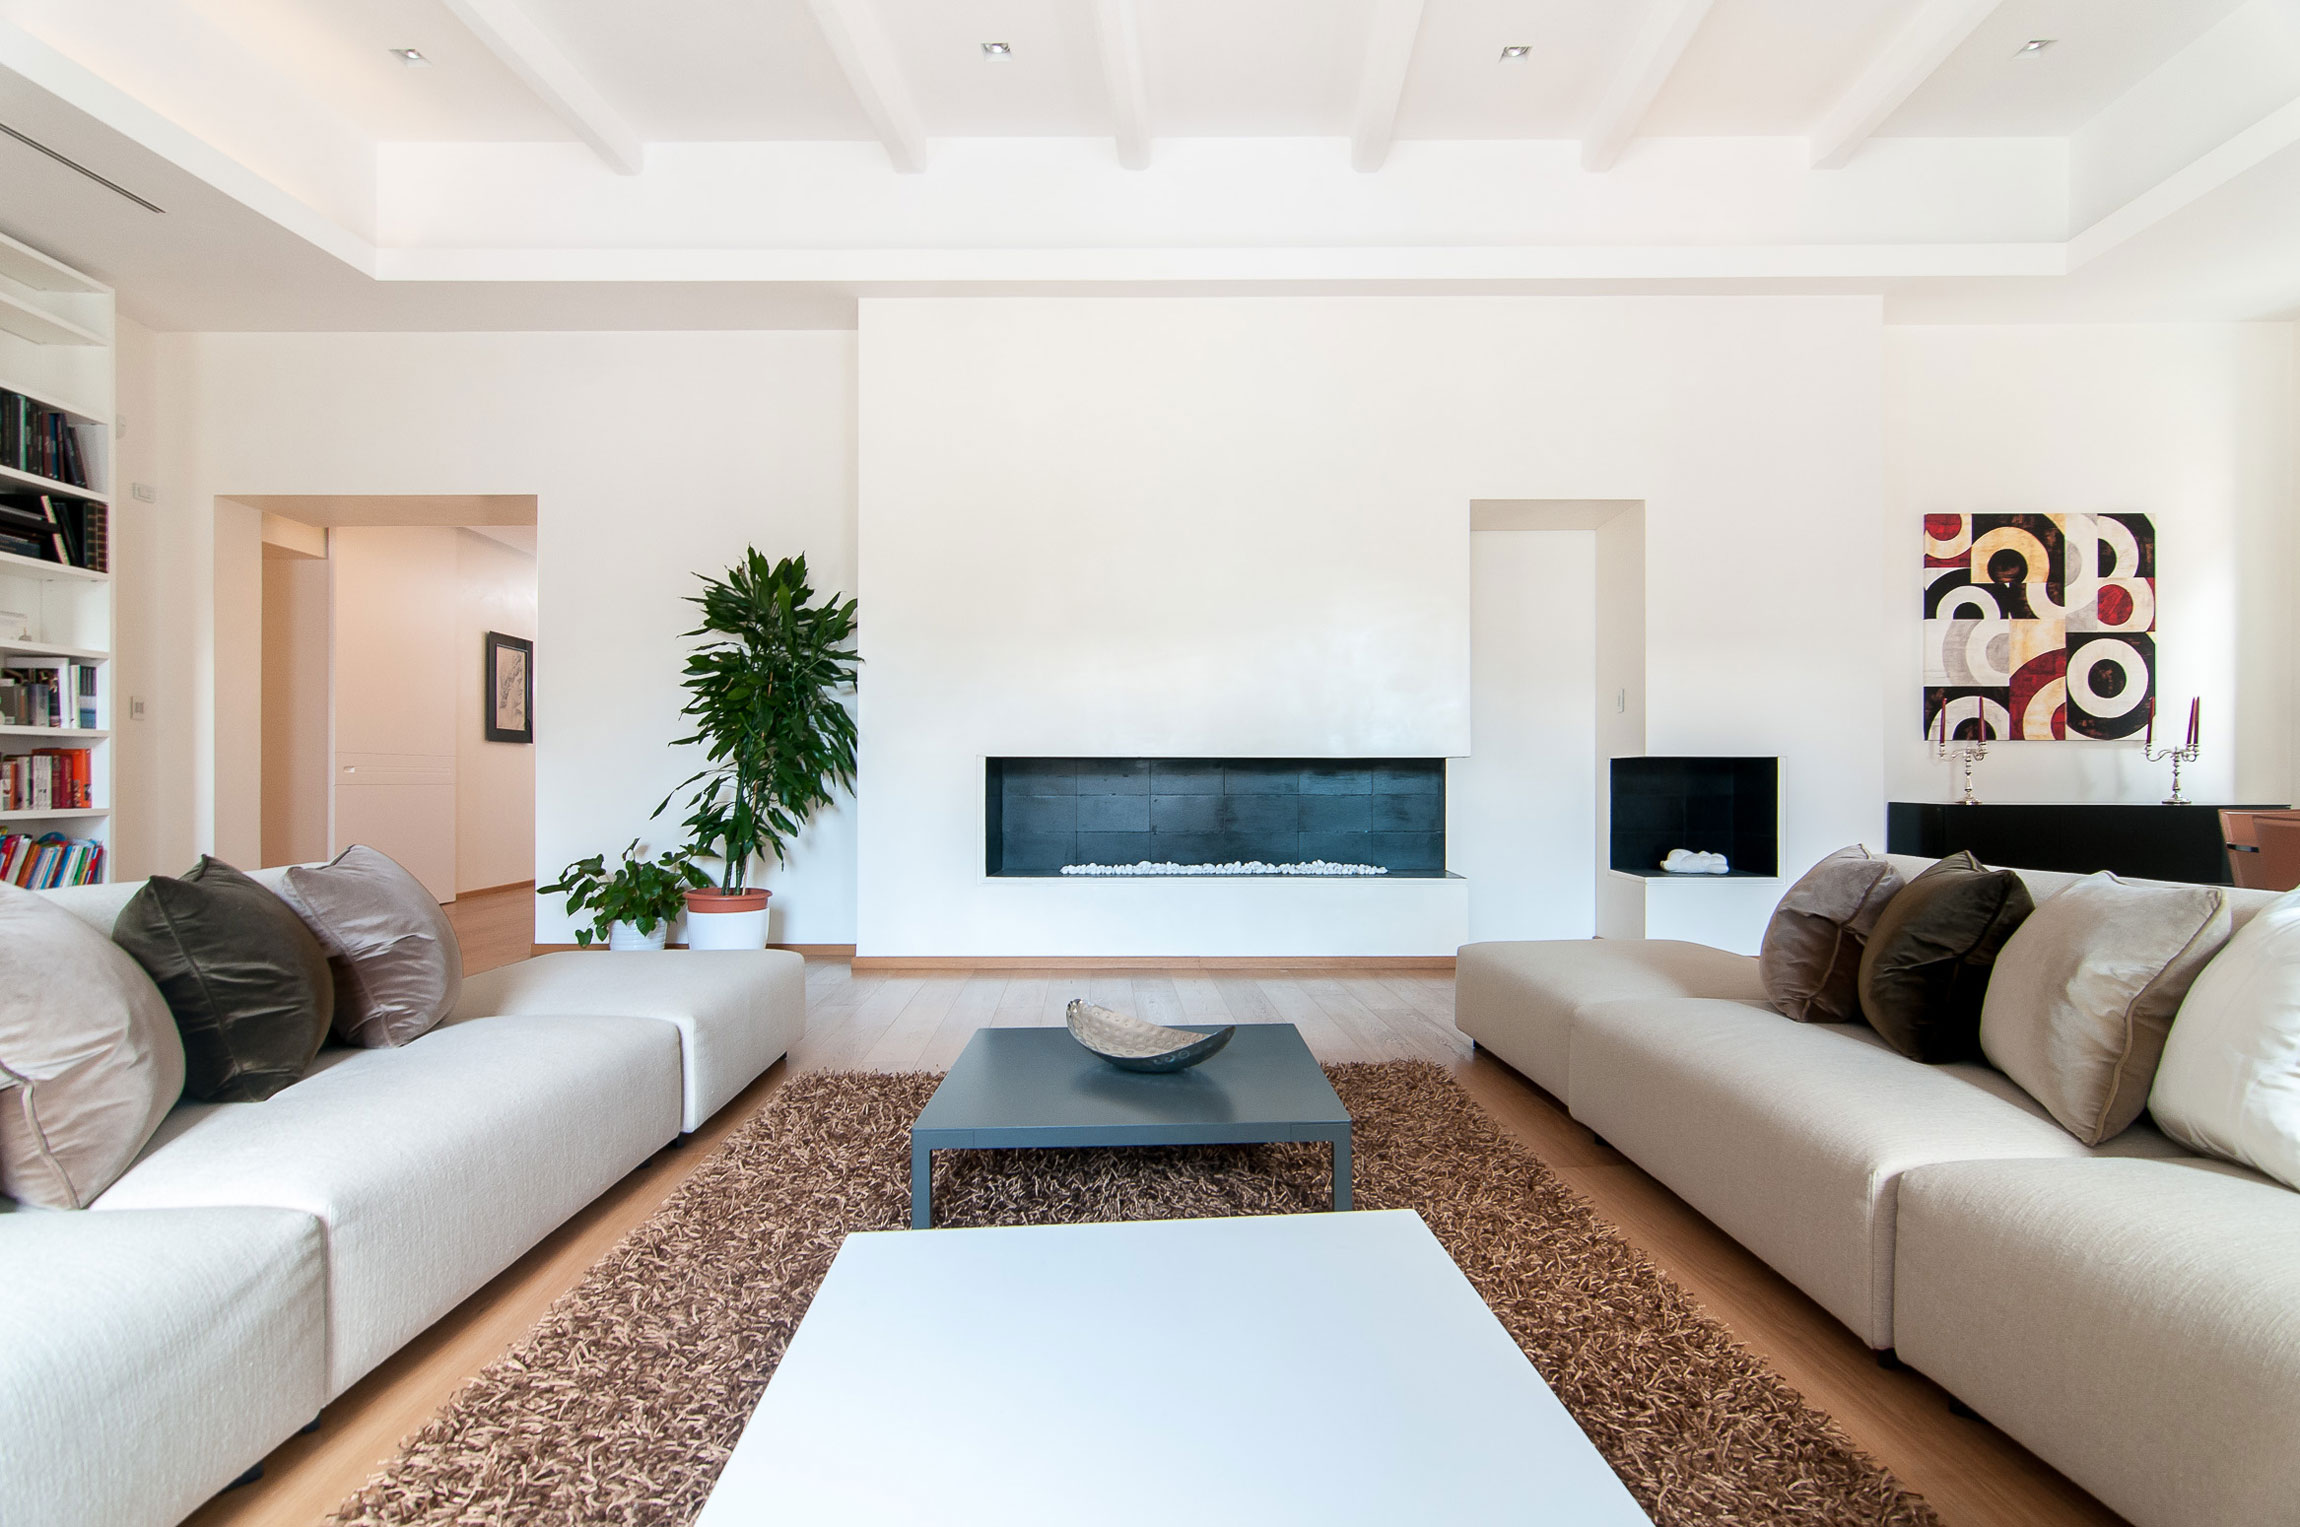 CM Apartment in Rome by 3C+t Capolei Cavalli a.a.-08